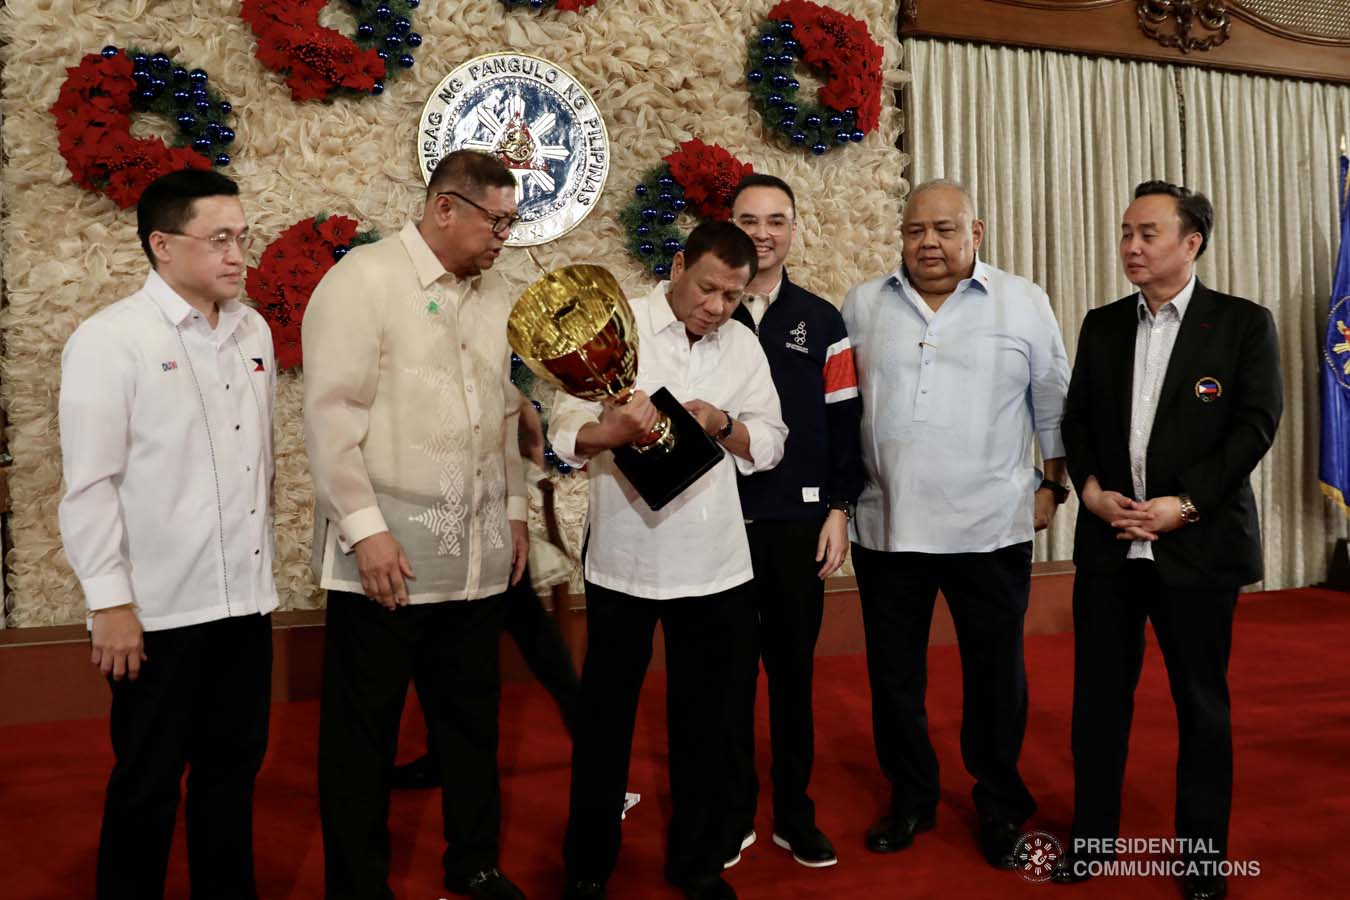 """President Rodrigo Roa Duterte holds the overall champion trophy of the Philippine Team during the recognition of the 2019 Southeast Asian Games medalists at the Malacañan Palace on December 18, 2019. The Philippine Team emerged as overall champion in the recently-concluded 2019 SEA Games after garnering 149 golds, 117 silvers and 121 bronzes. With the President are Senator Christopher """"Bong"""" Go, Philippine Sports Commission Chairman William Ramirez, Senator Alan Peter Cayetano, Executive Secretary Salvador Medialdea and Philippine Olympic Committee President and Cavite Eighth District Representative Abraham Tolentino. RICHARD MADELO/PRESIDENTIAL PHOTO"""